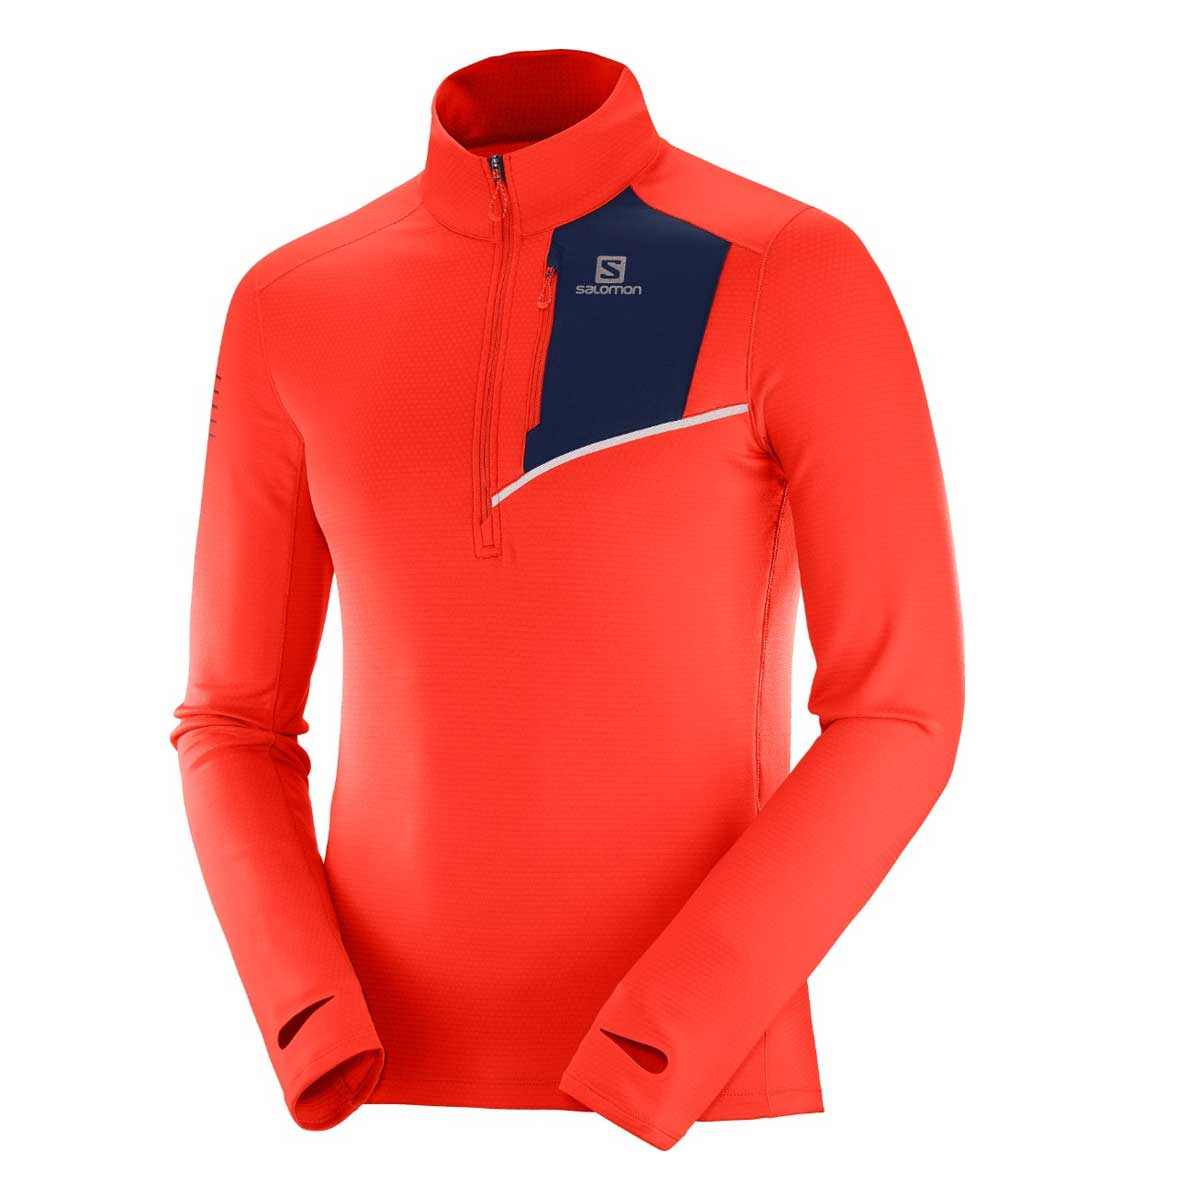 Salomon Men's Fast Wing Midlayer Top in Fiery Red and Night Sky